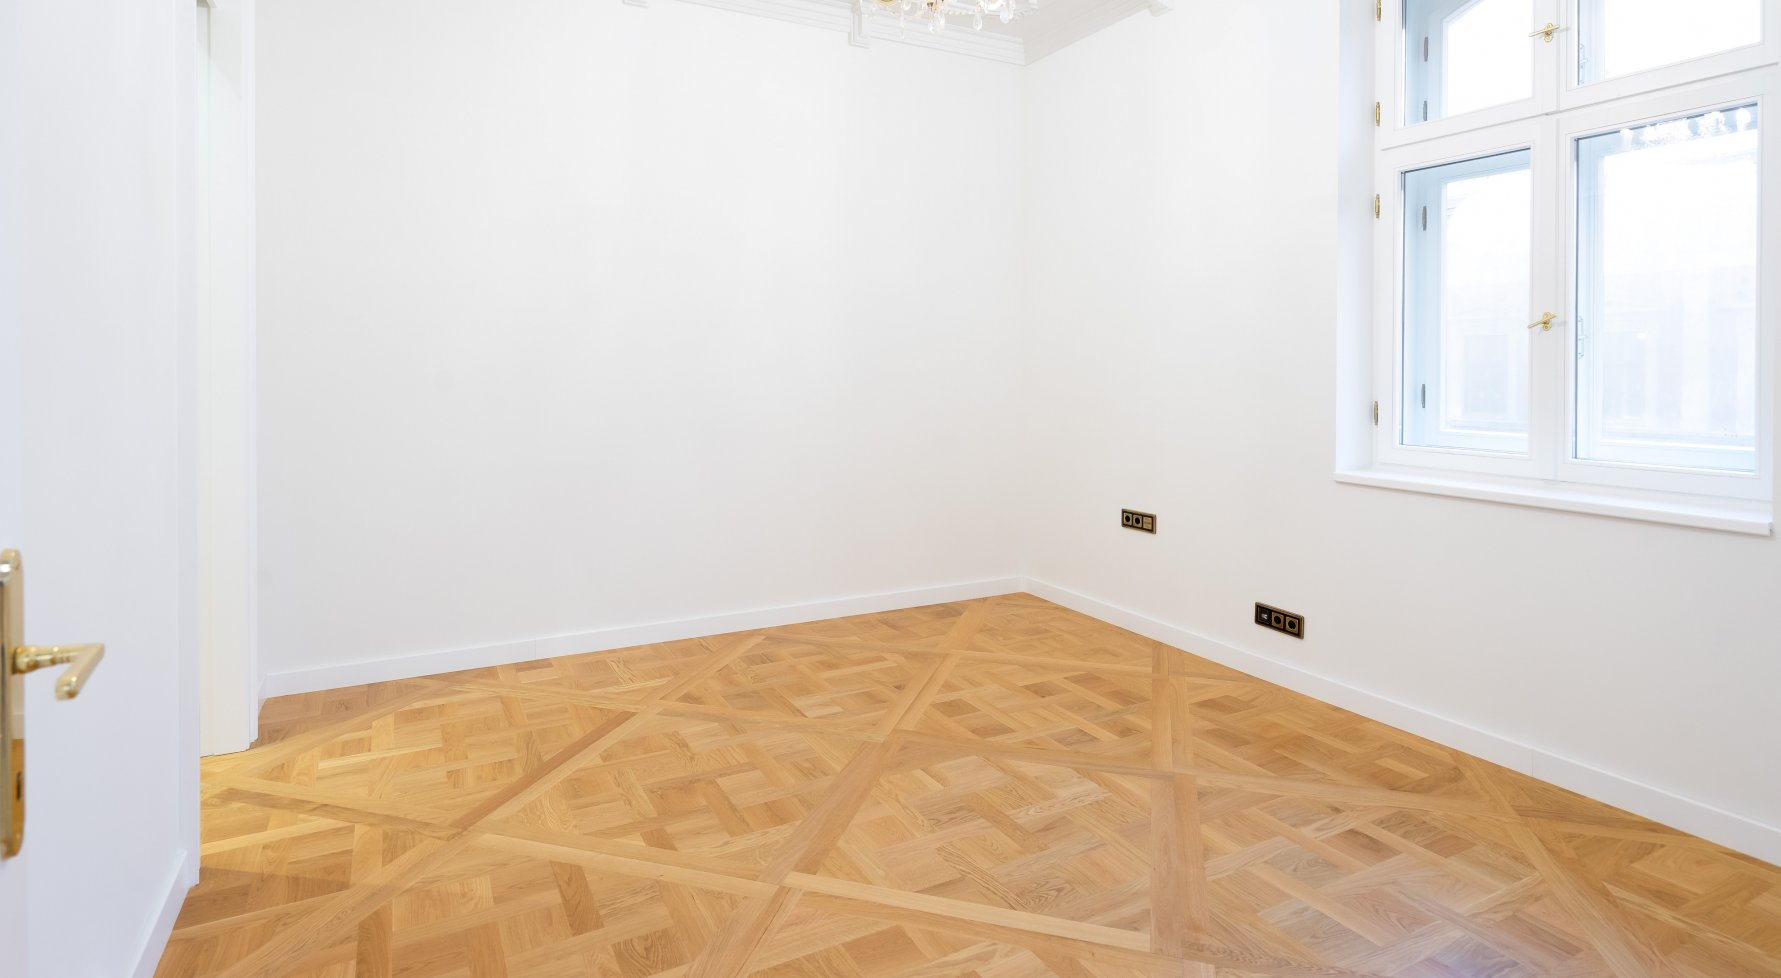 Property in 1010 Wien, 1. Bezirk: Living in an exclusive environment - for people who want MORE! - picture 1